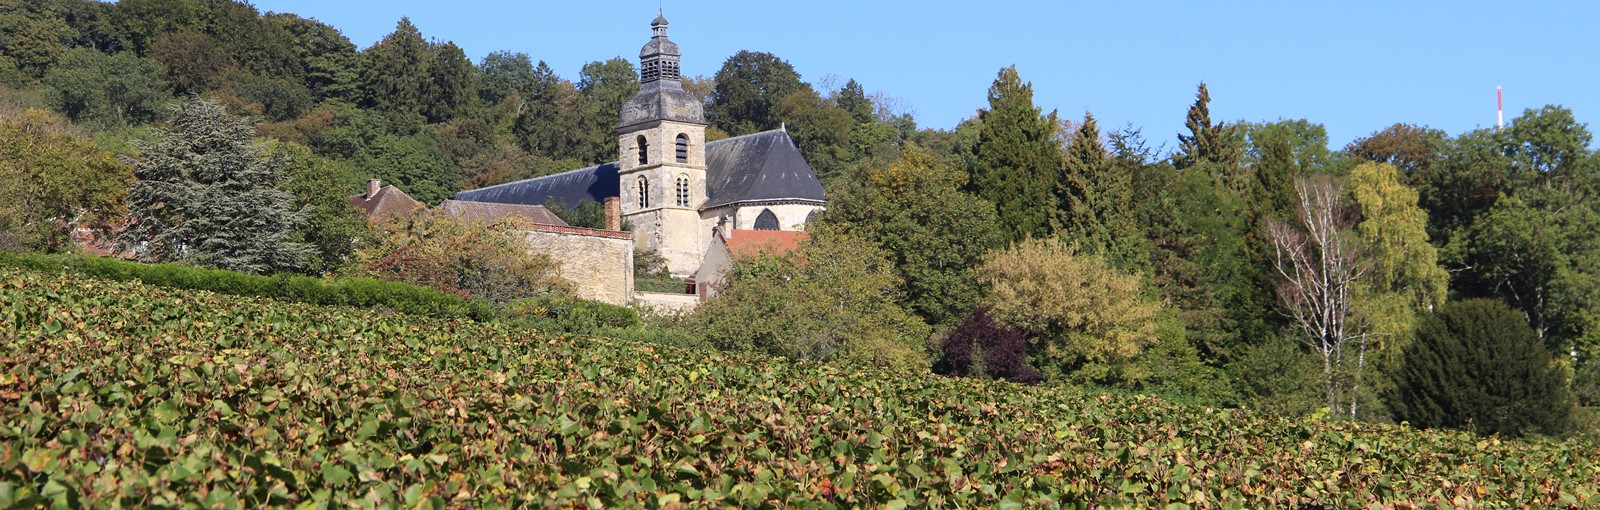 Tours Reims - Champagne - Full days - Day tours from Paris